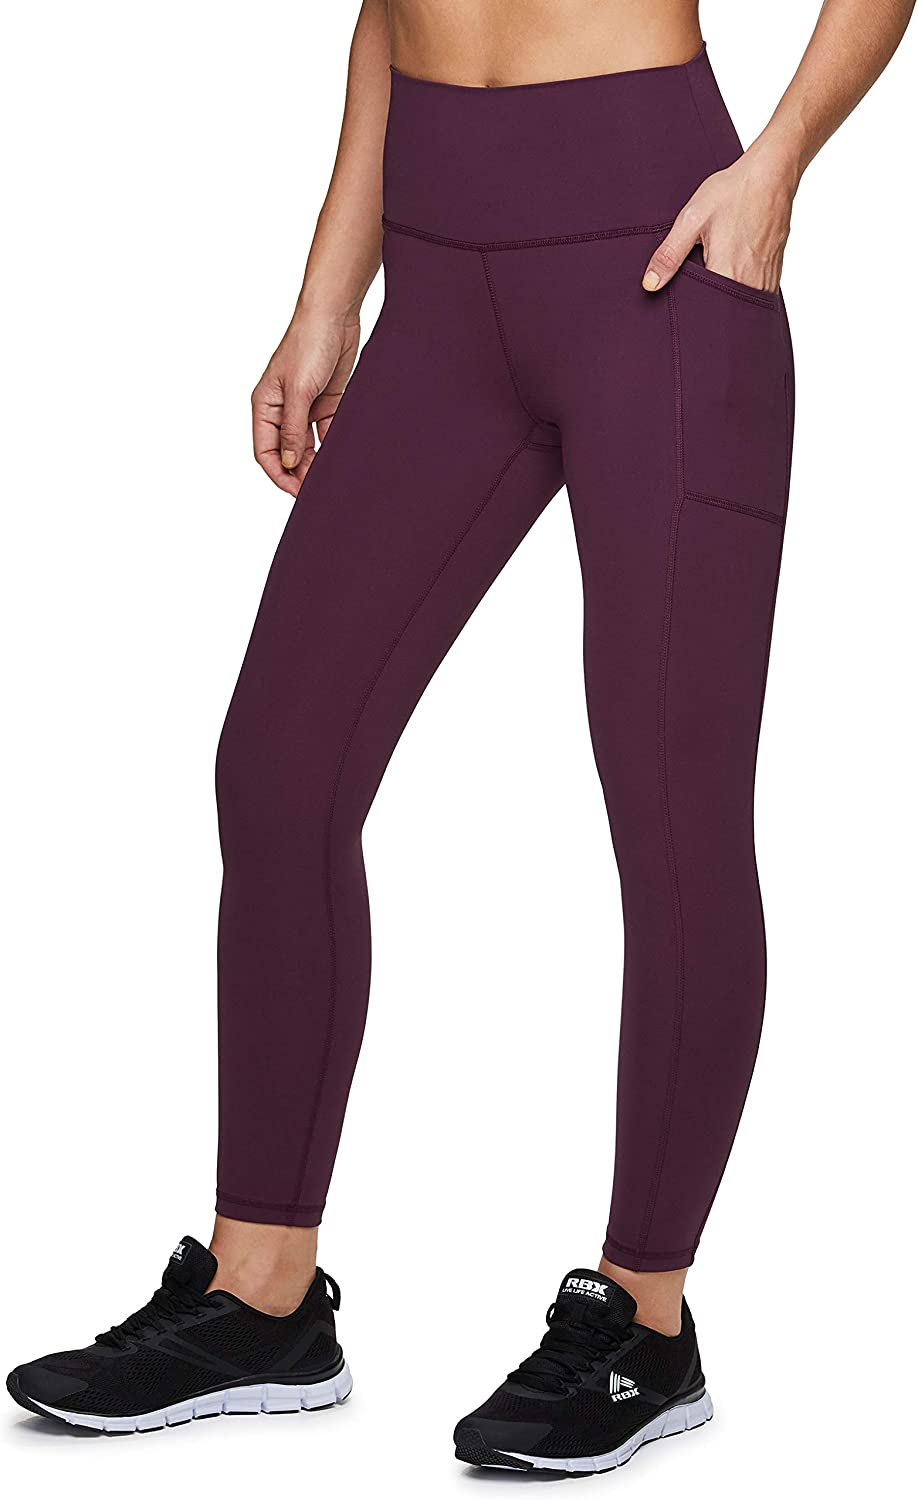 RBX Active High Waisted Squat Proof Workout Yoga Leggings with Pockets for Women : Sports & Outdoors